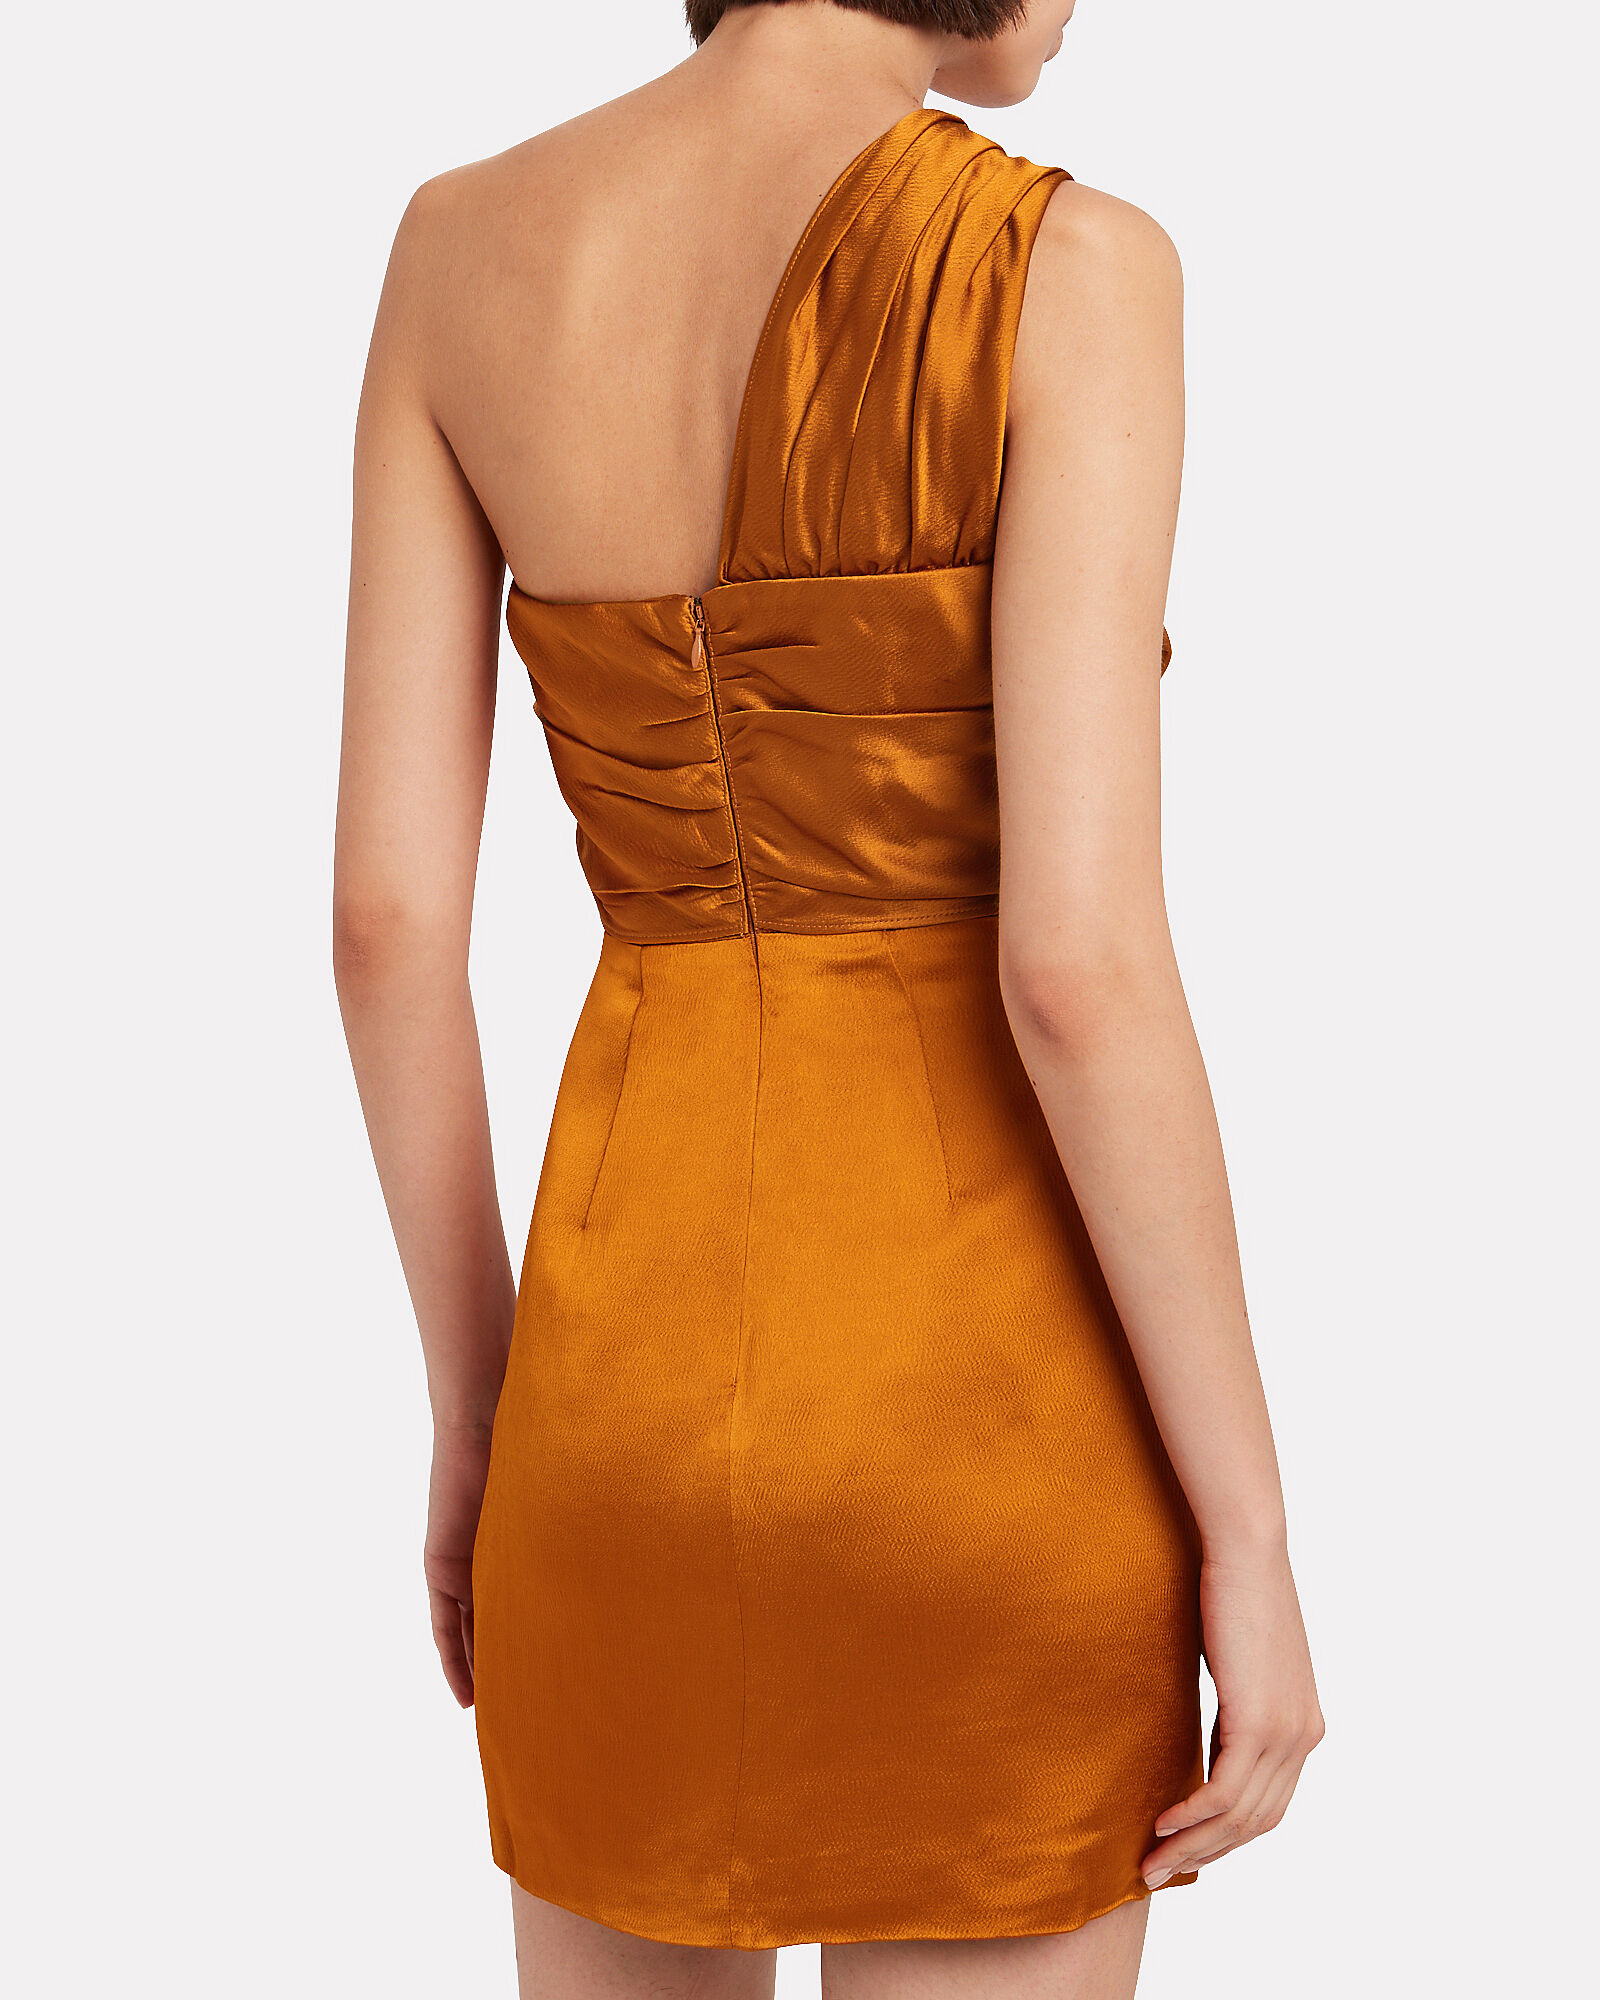 Misha One-Shoulder Mini Dress, YELLOW, hi-res